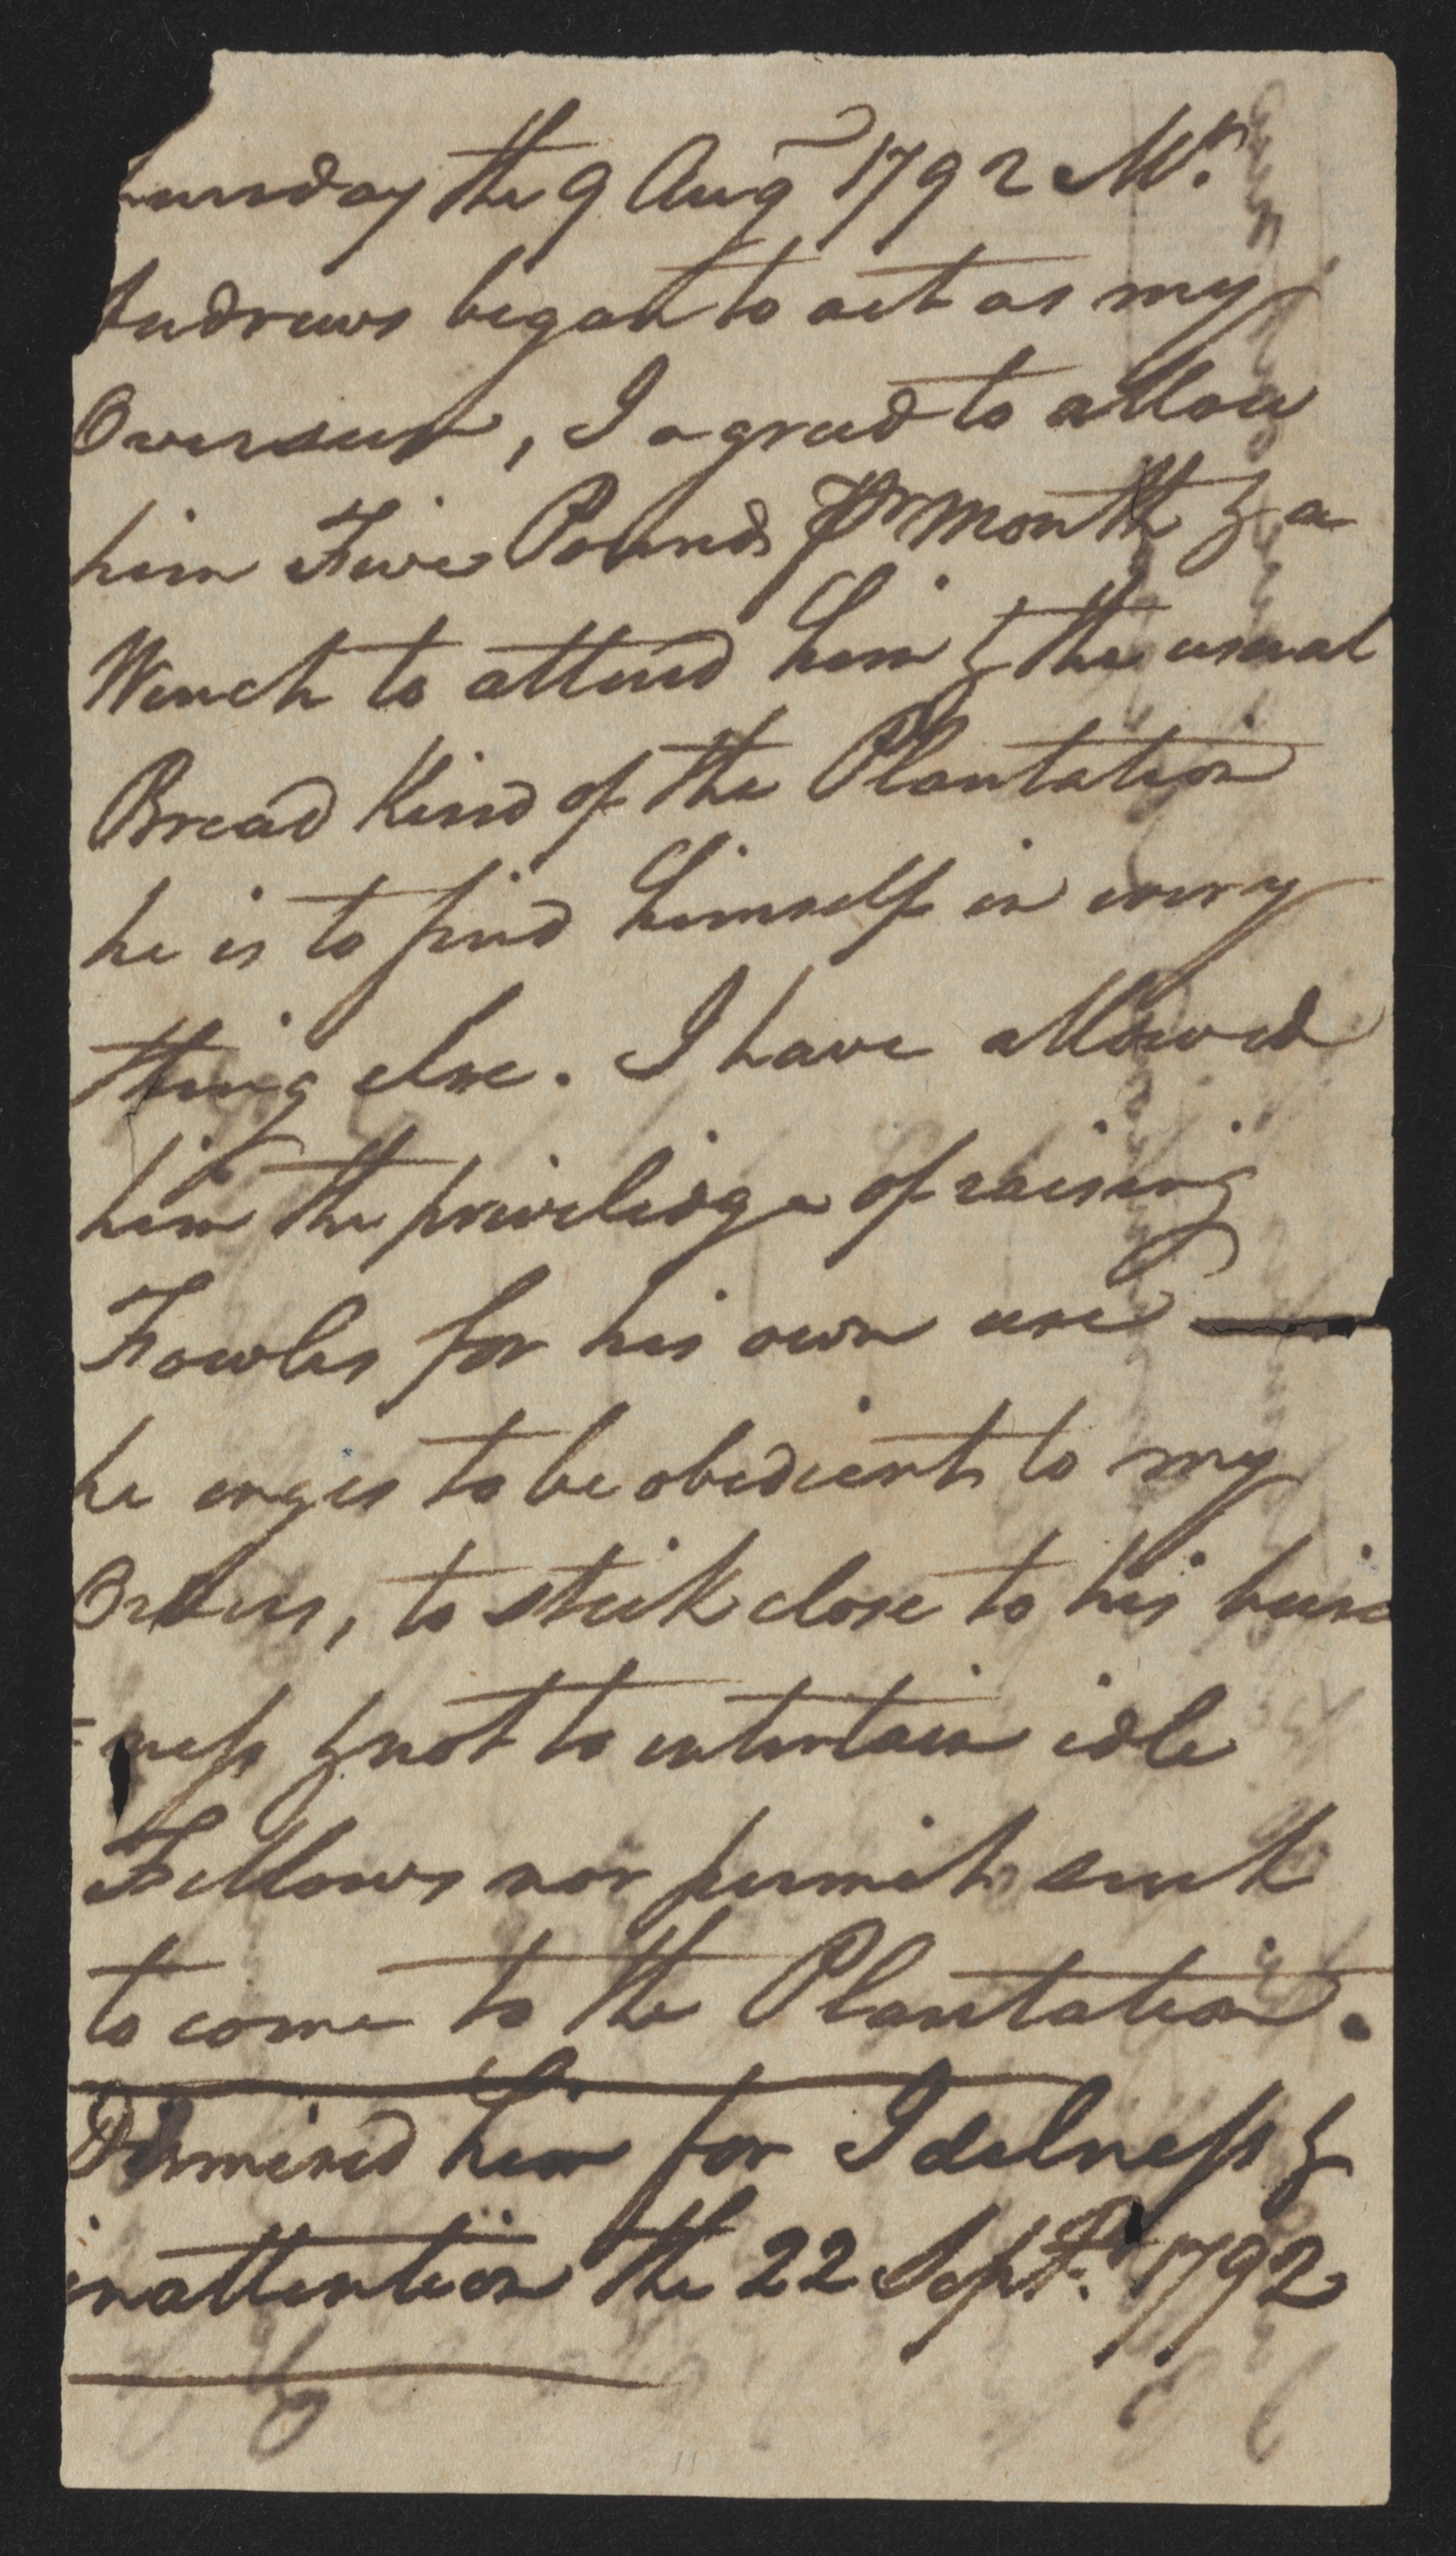 Sandy Island Plantation Journal, Volume 1, 1792, Page 20